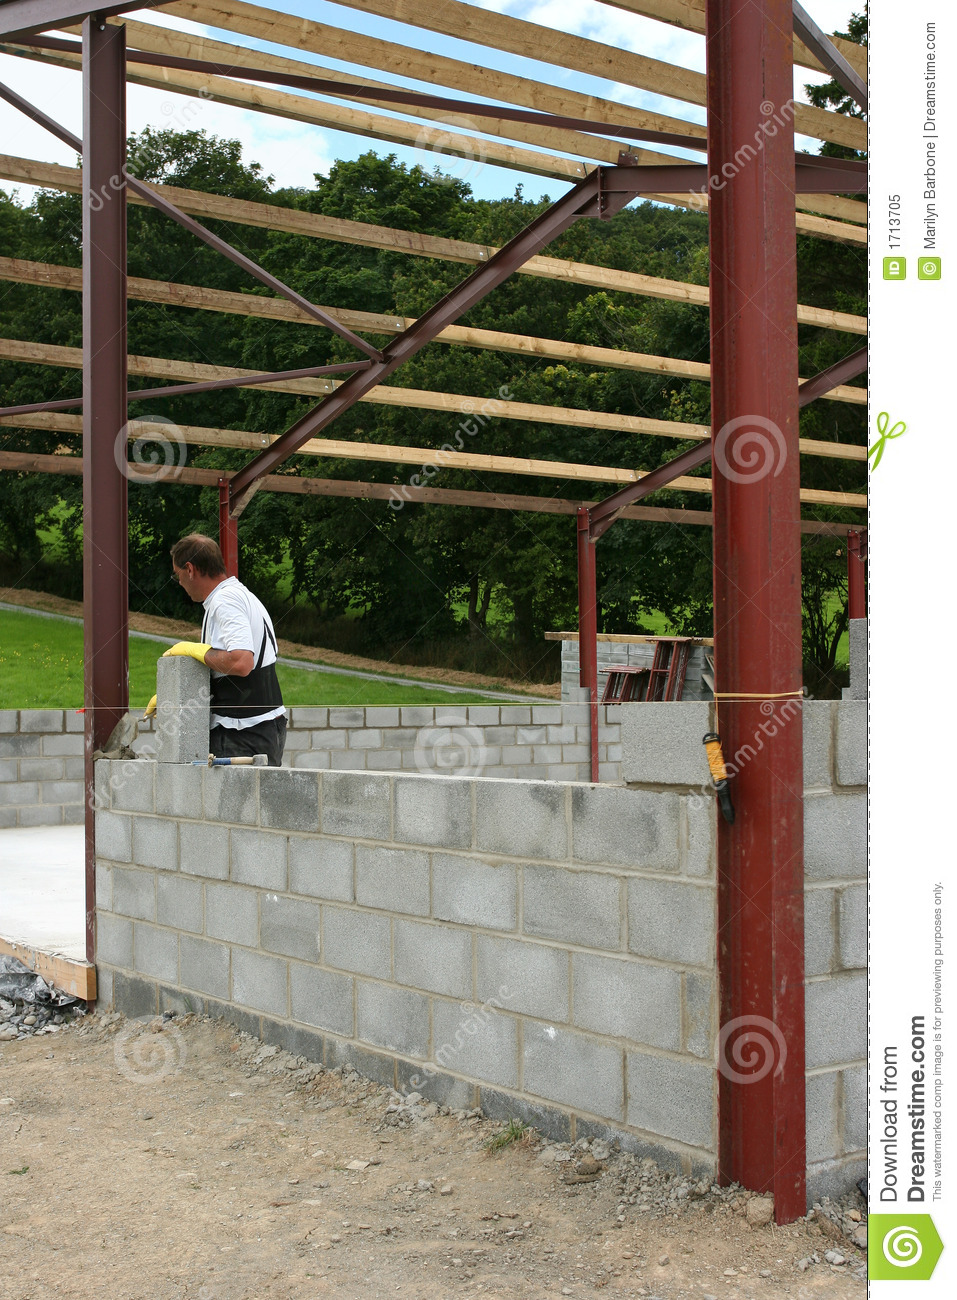 Construction d 39 un mur de bloc concret image stock image for Concevez vos propres plans de construction gratuitement